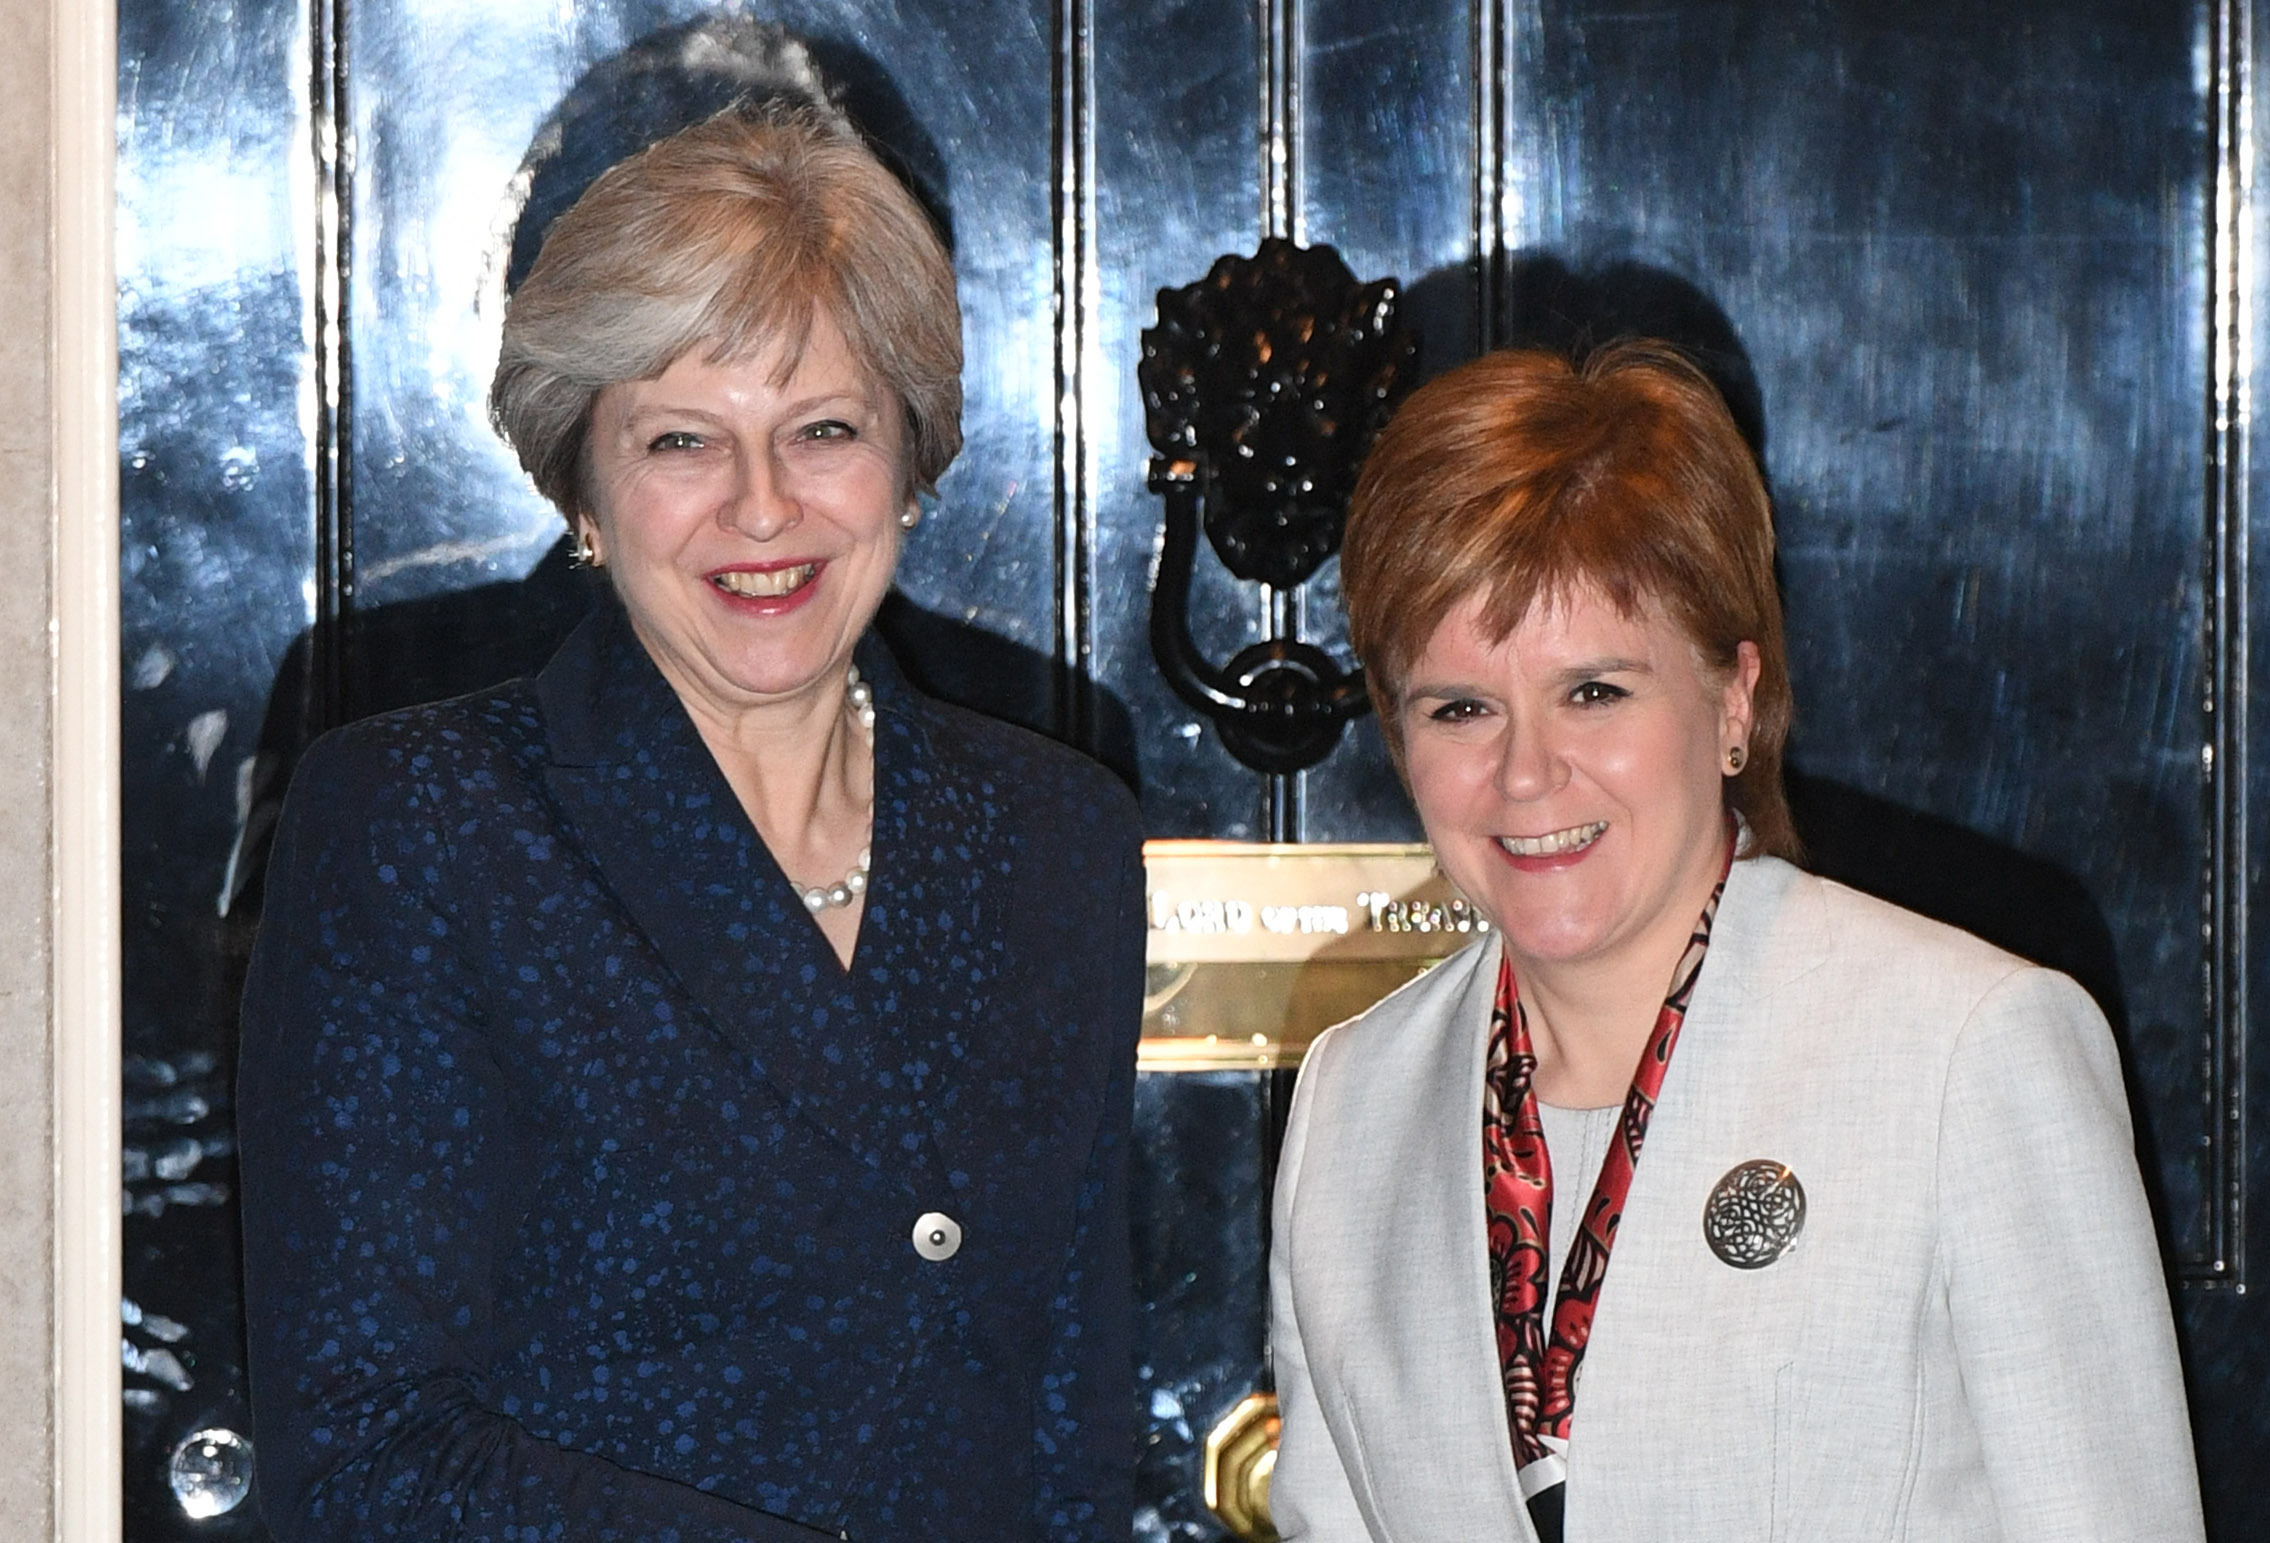 Prime Minister Theresa May (left) greets Scottish First Minister Nicola Sturgeon at 10 Downing Street, London in November 2017